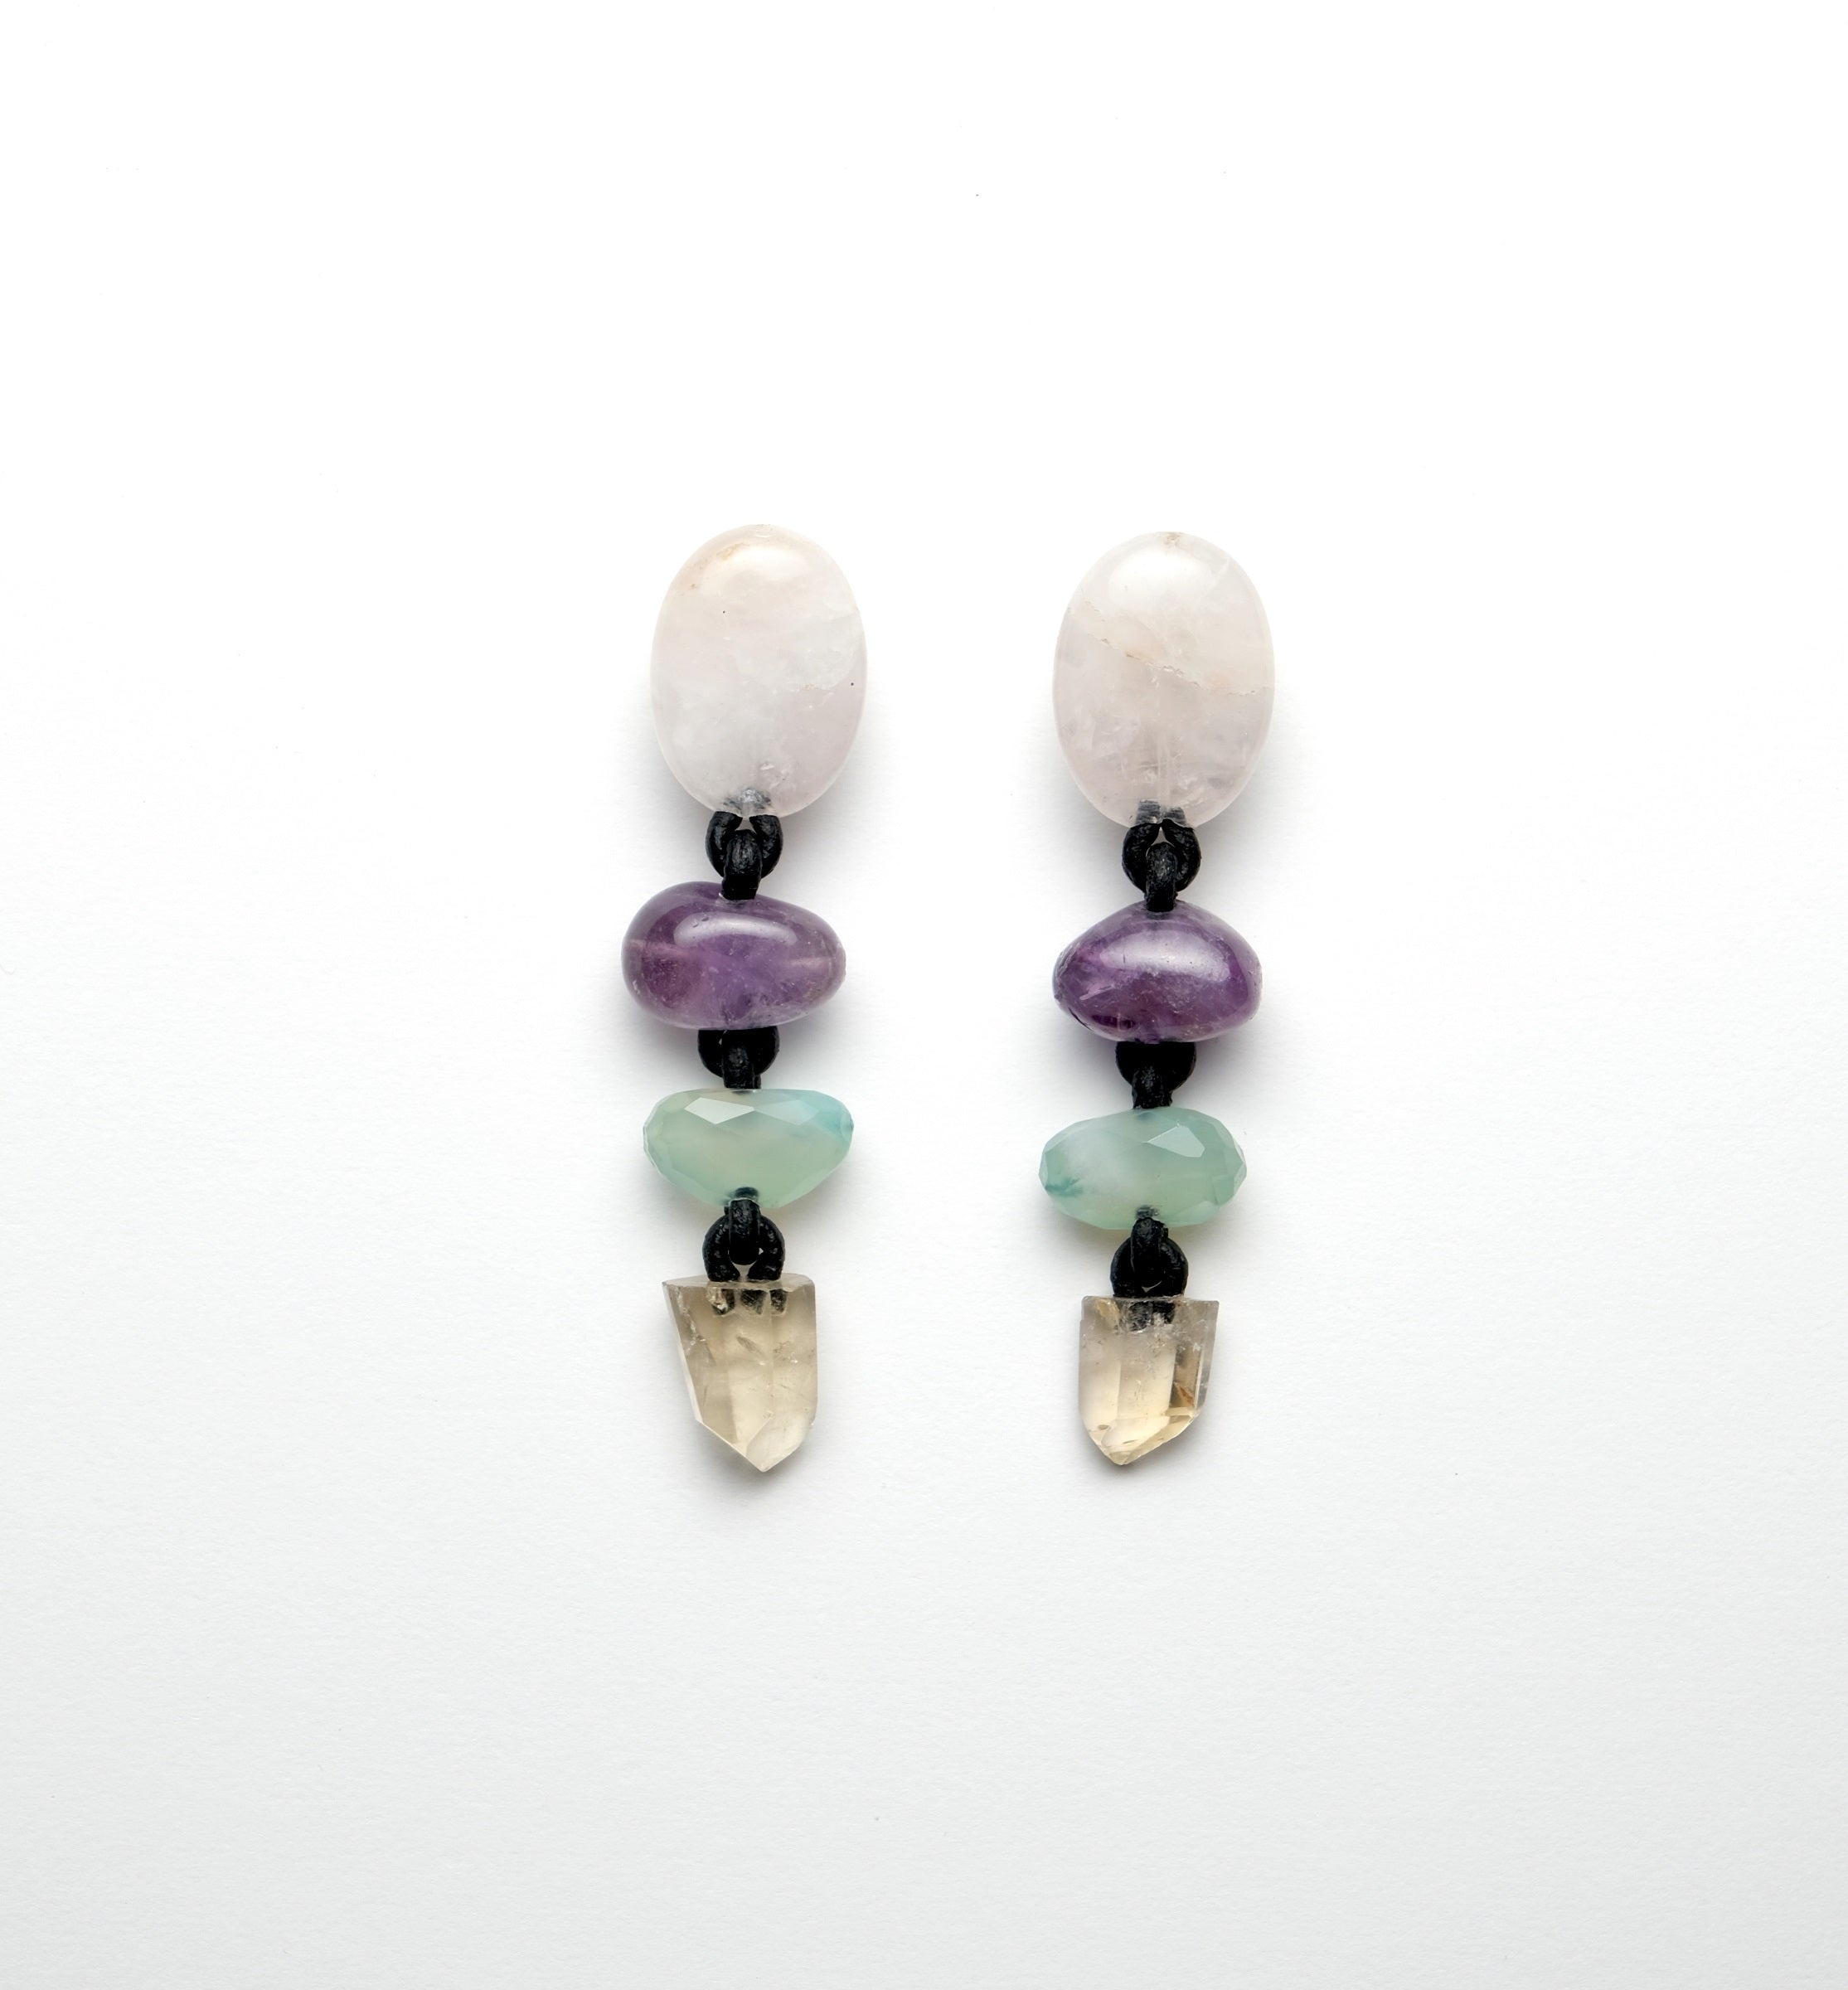 Earrings in rosequartz, amethyst, prehnit and citrine